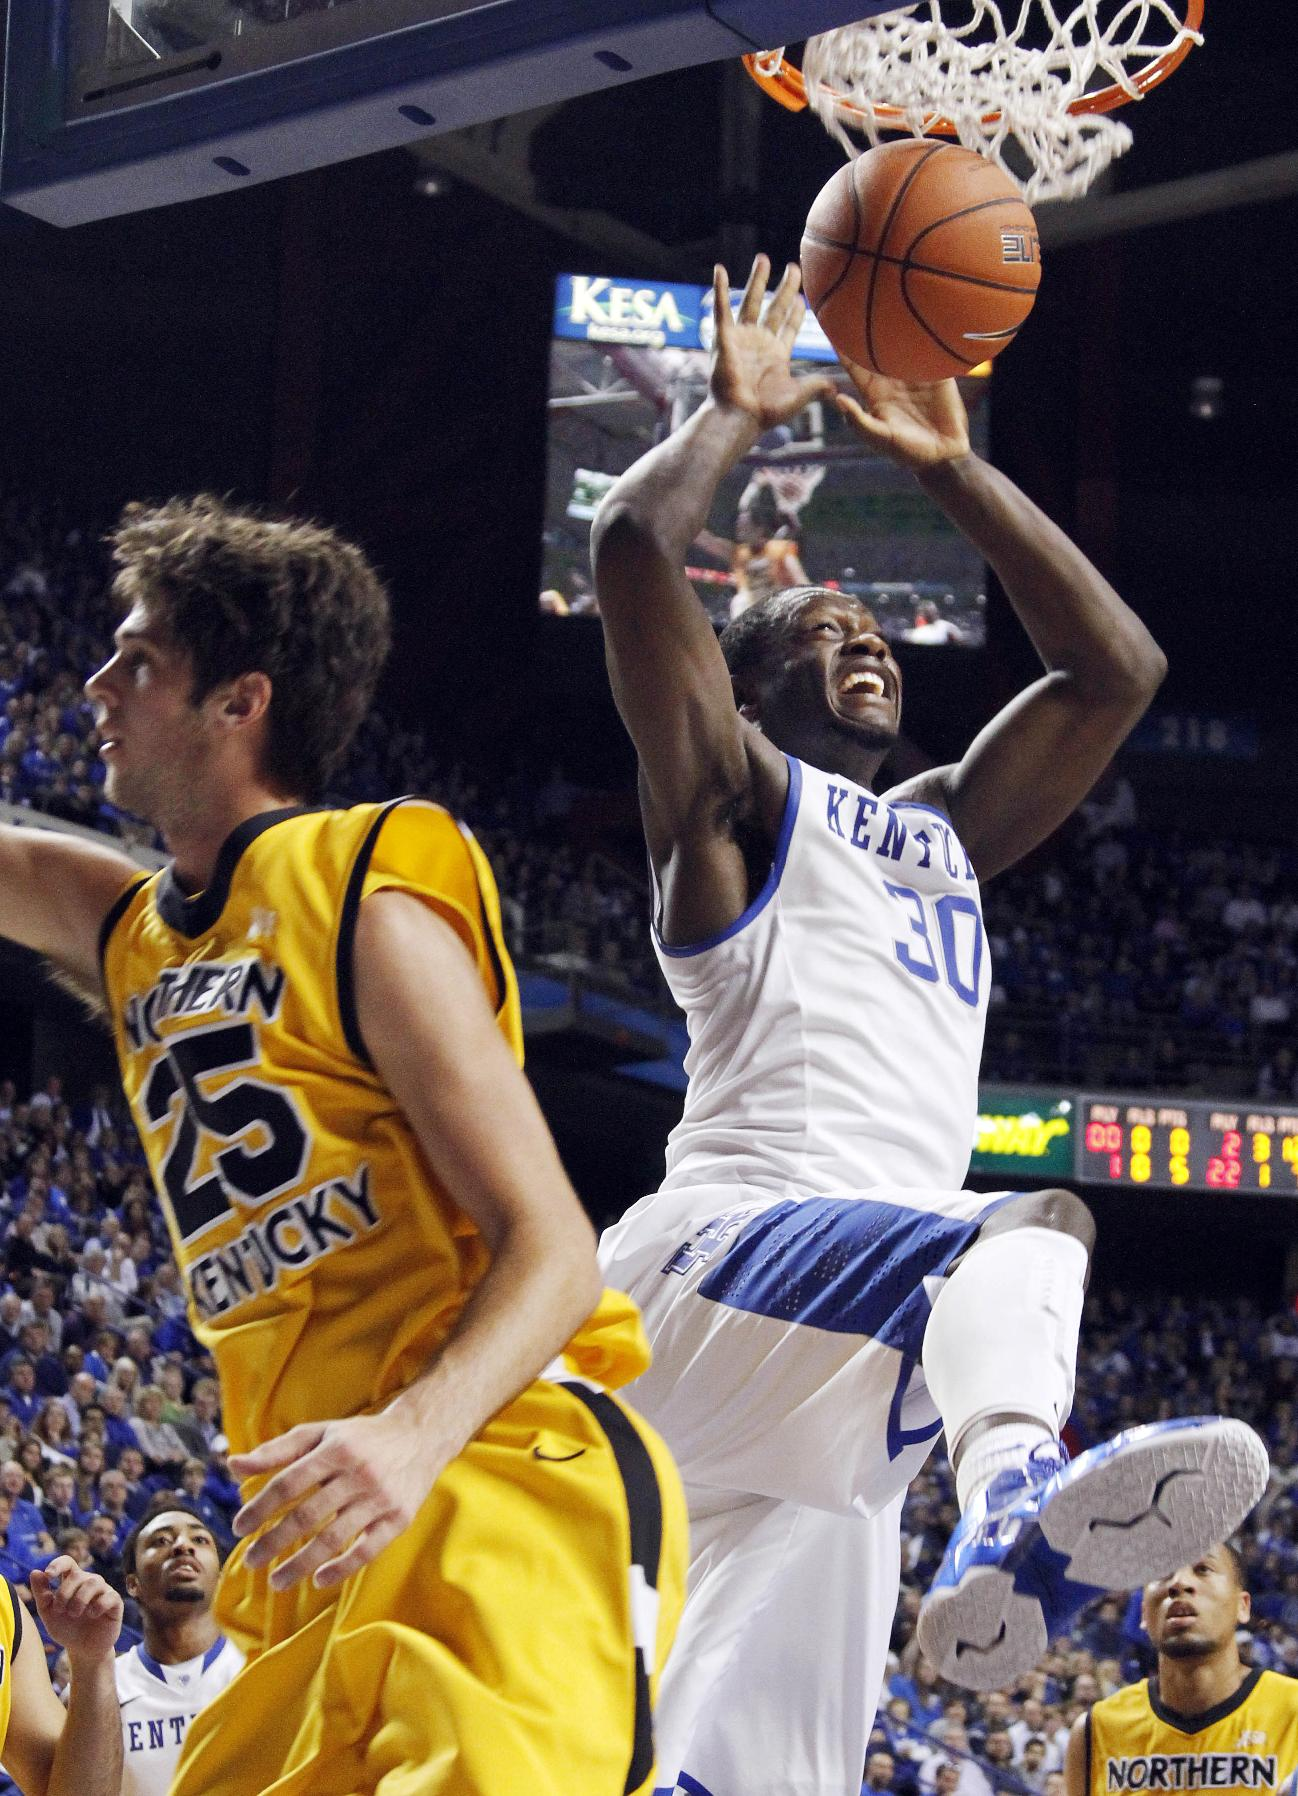 Kentucky's Julius Randle (30) dunks next to Northern Kentucky's Cole Murray (25) during the second half of an NCAA college basketball game Sunday, Nov. 10, 2013, in Lexington, Ky. Kentucky won 93-63